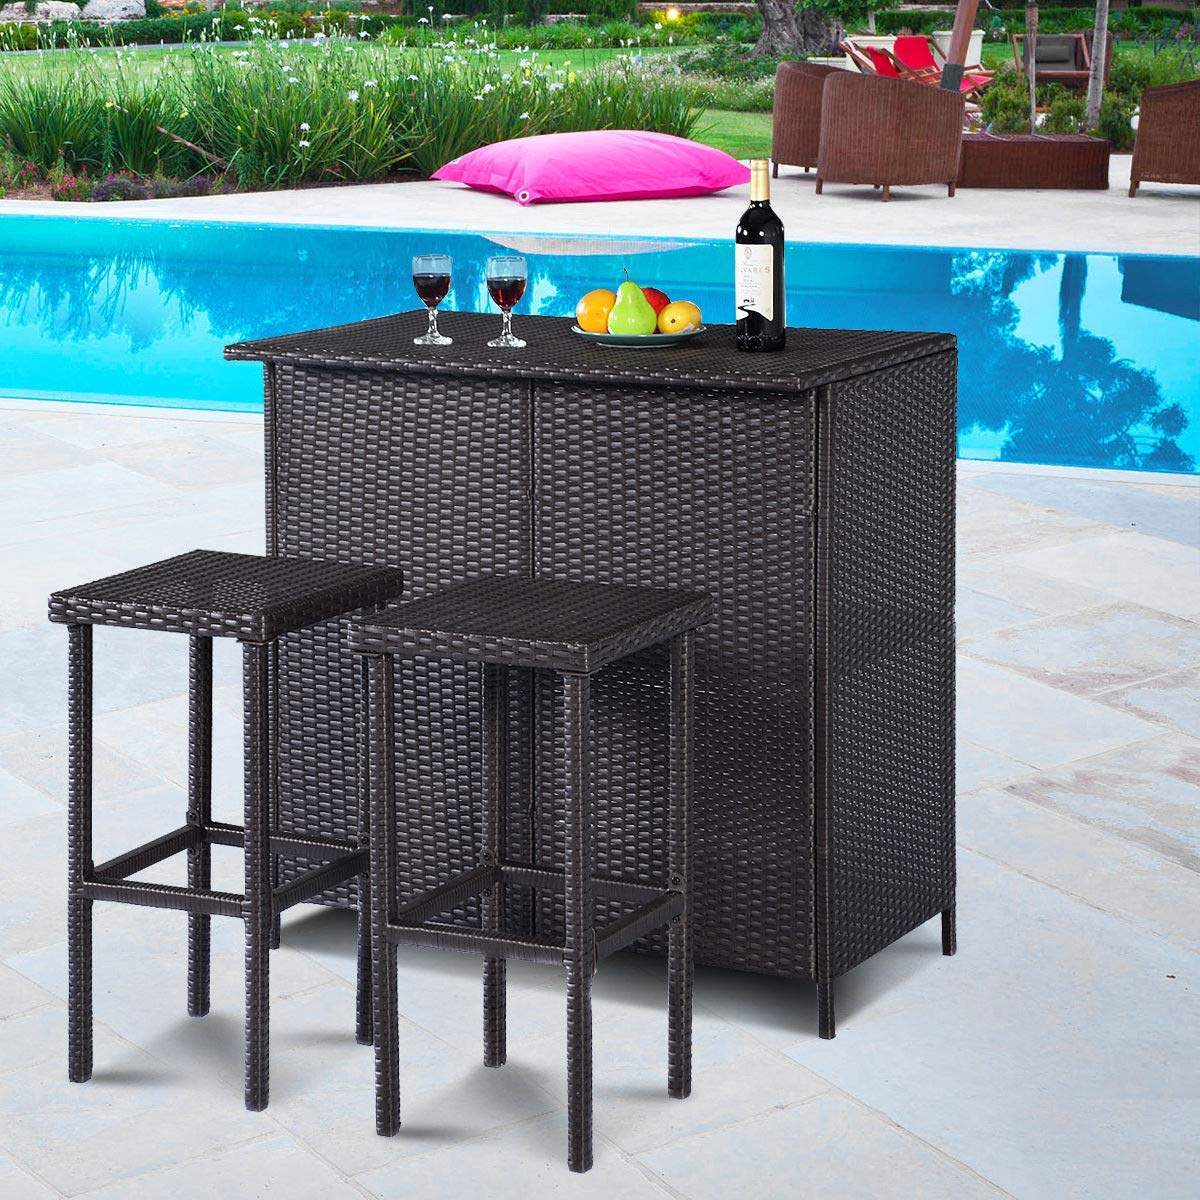 KCHEX> 3PCS Rattan Wicker Bar Set Patio Outdoor Table & 2 Stools Furniture Brown>3 pieces outdoor rattan wicker bar set, including 1 table and 2 stools. Made of rattan wicker, this furniture set looks